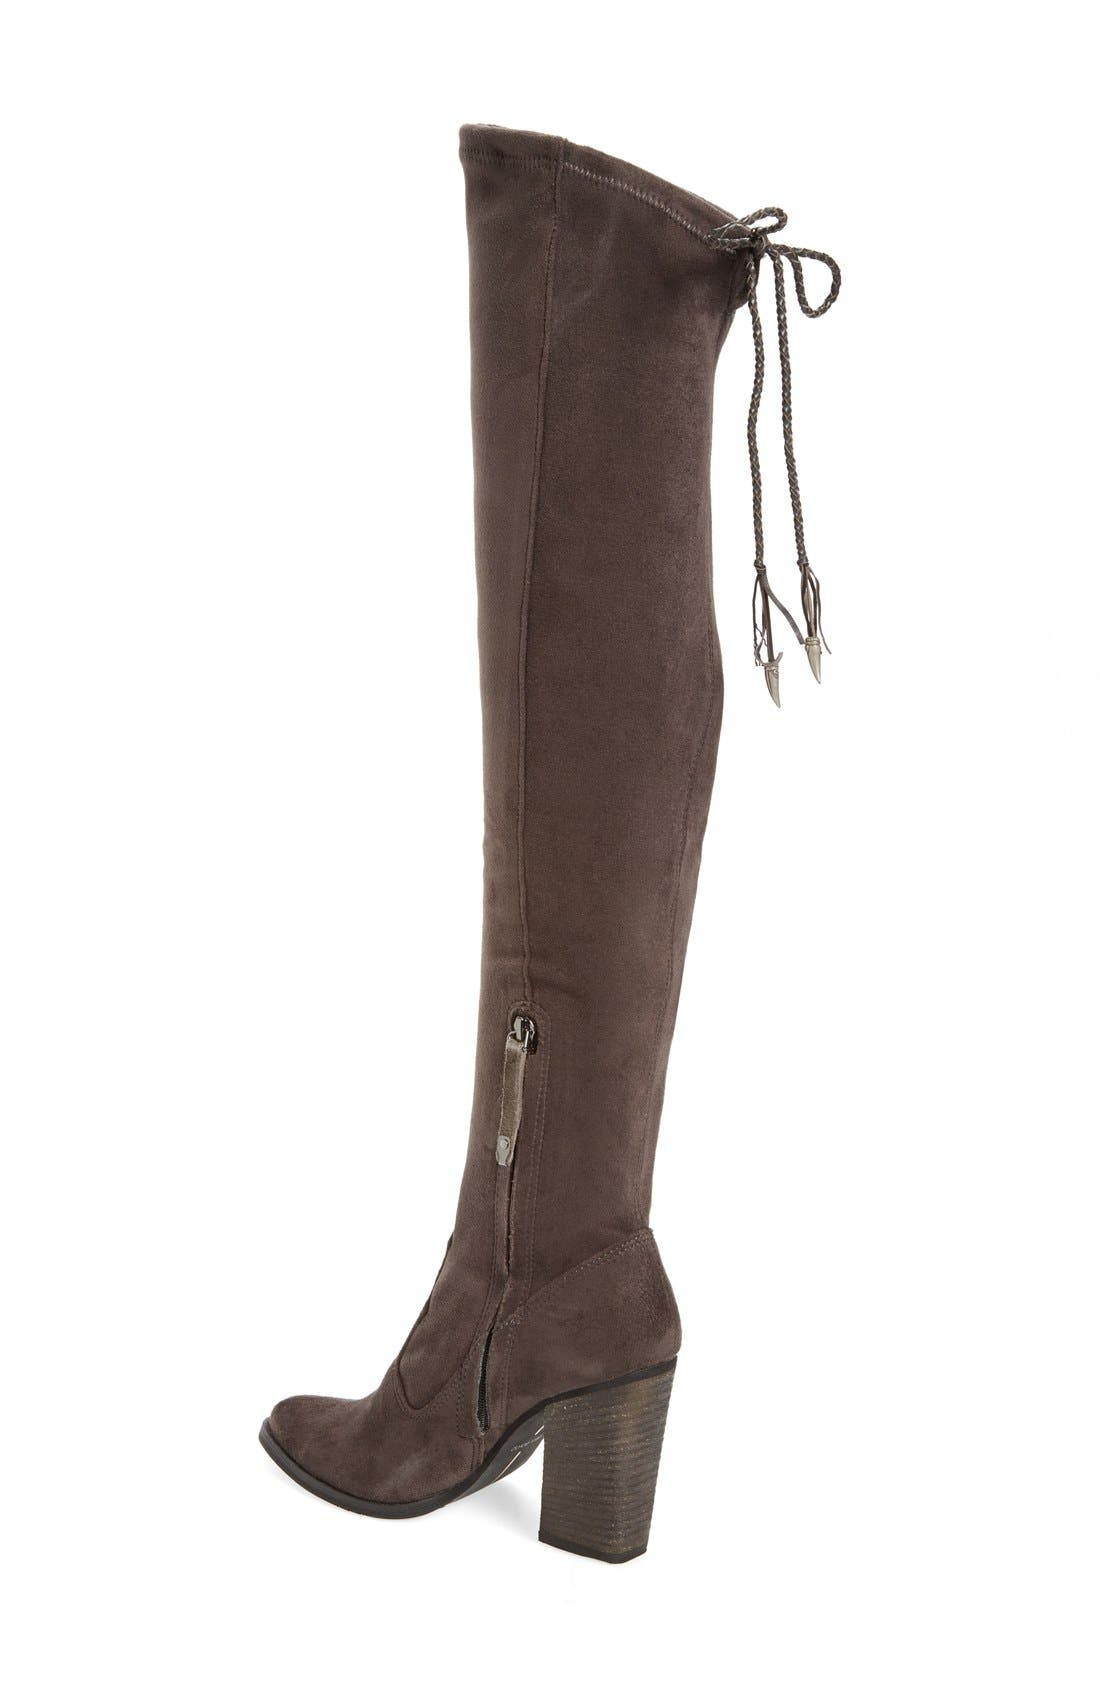 Alternate Image 2  - Dolce Vita 'Chance' Over the Knee Stretch Boot (Women) (Narrow Calf)